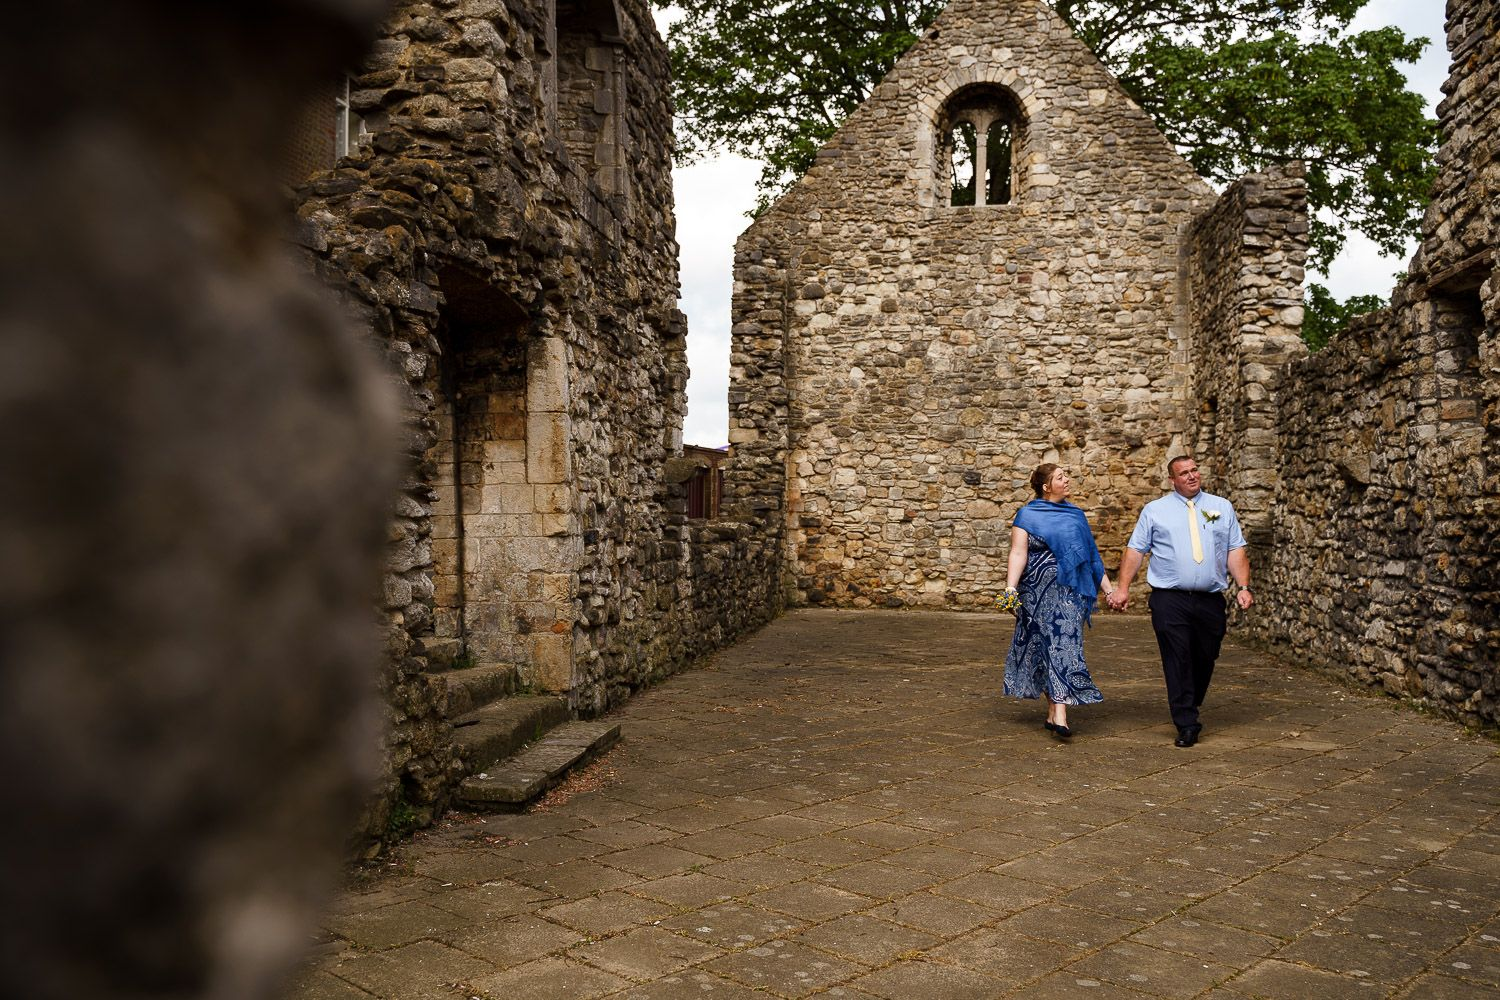 Bride and groom walk through medieval ruin in Southampton after their registry office wedding.